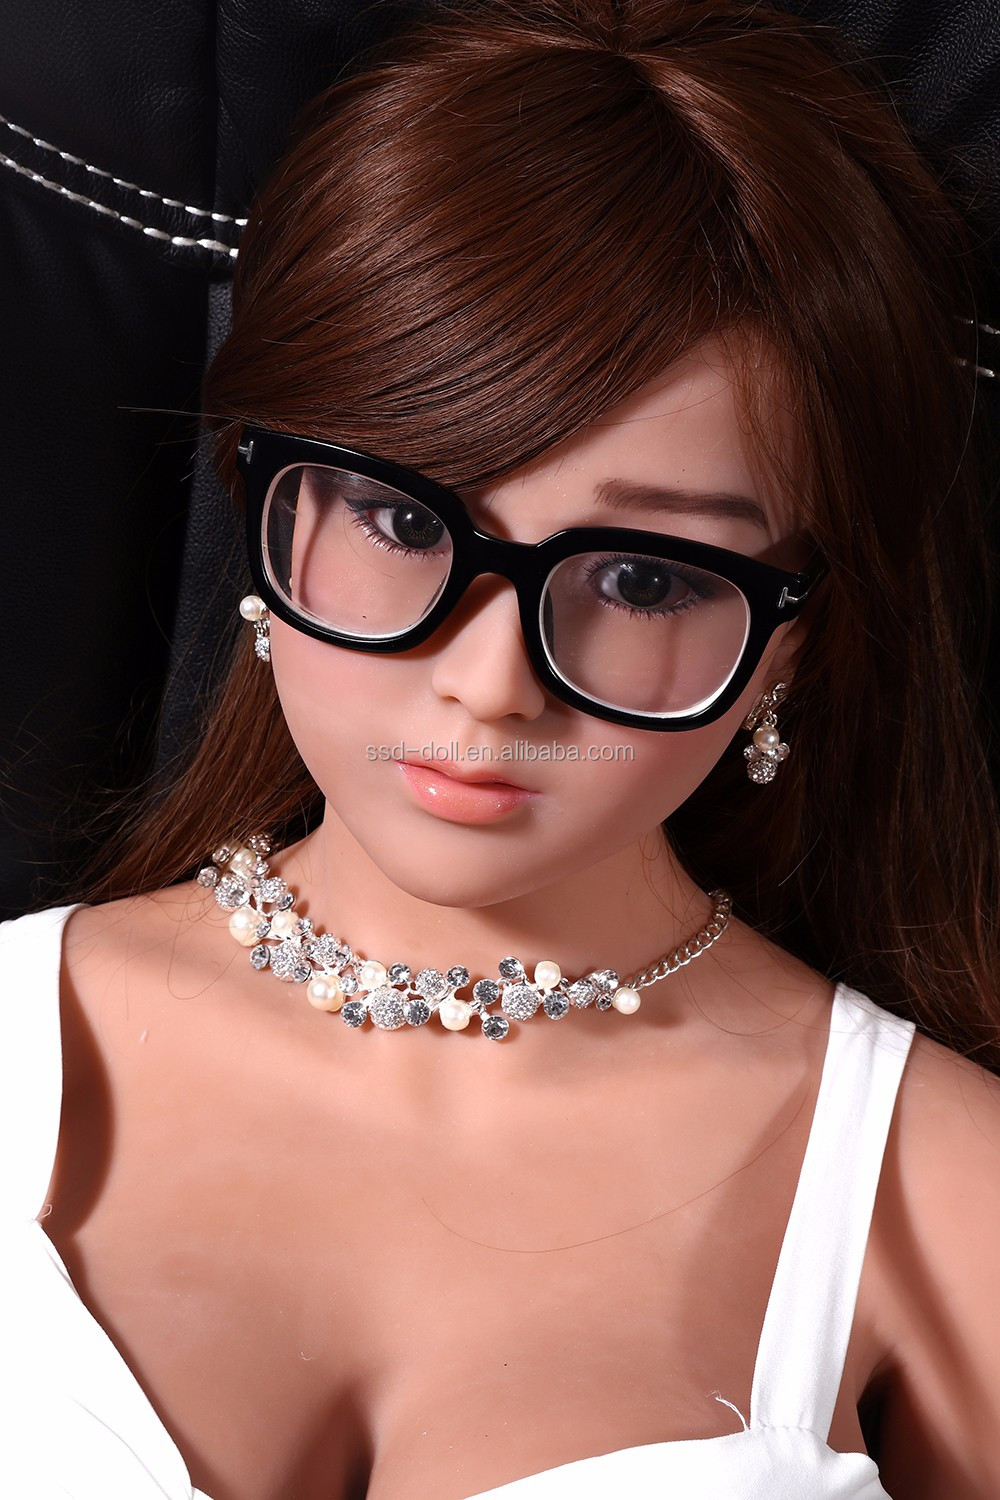 Full Size Body Solid Asian Japan Sex 18 Girl Best Silicone Sex Doll for Men Real TPE Latest